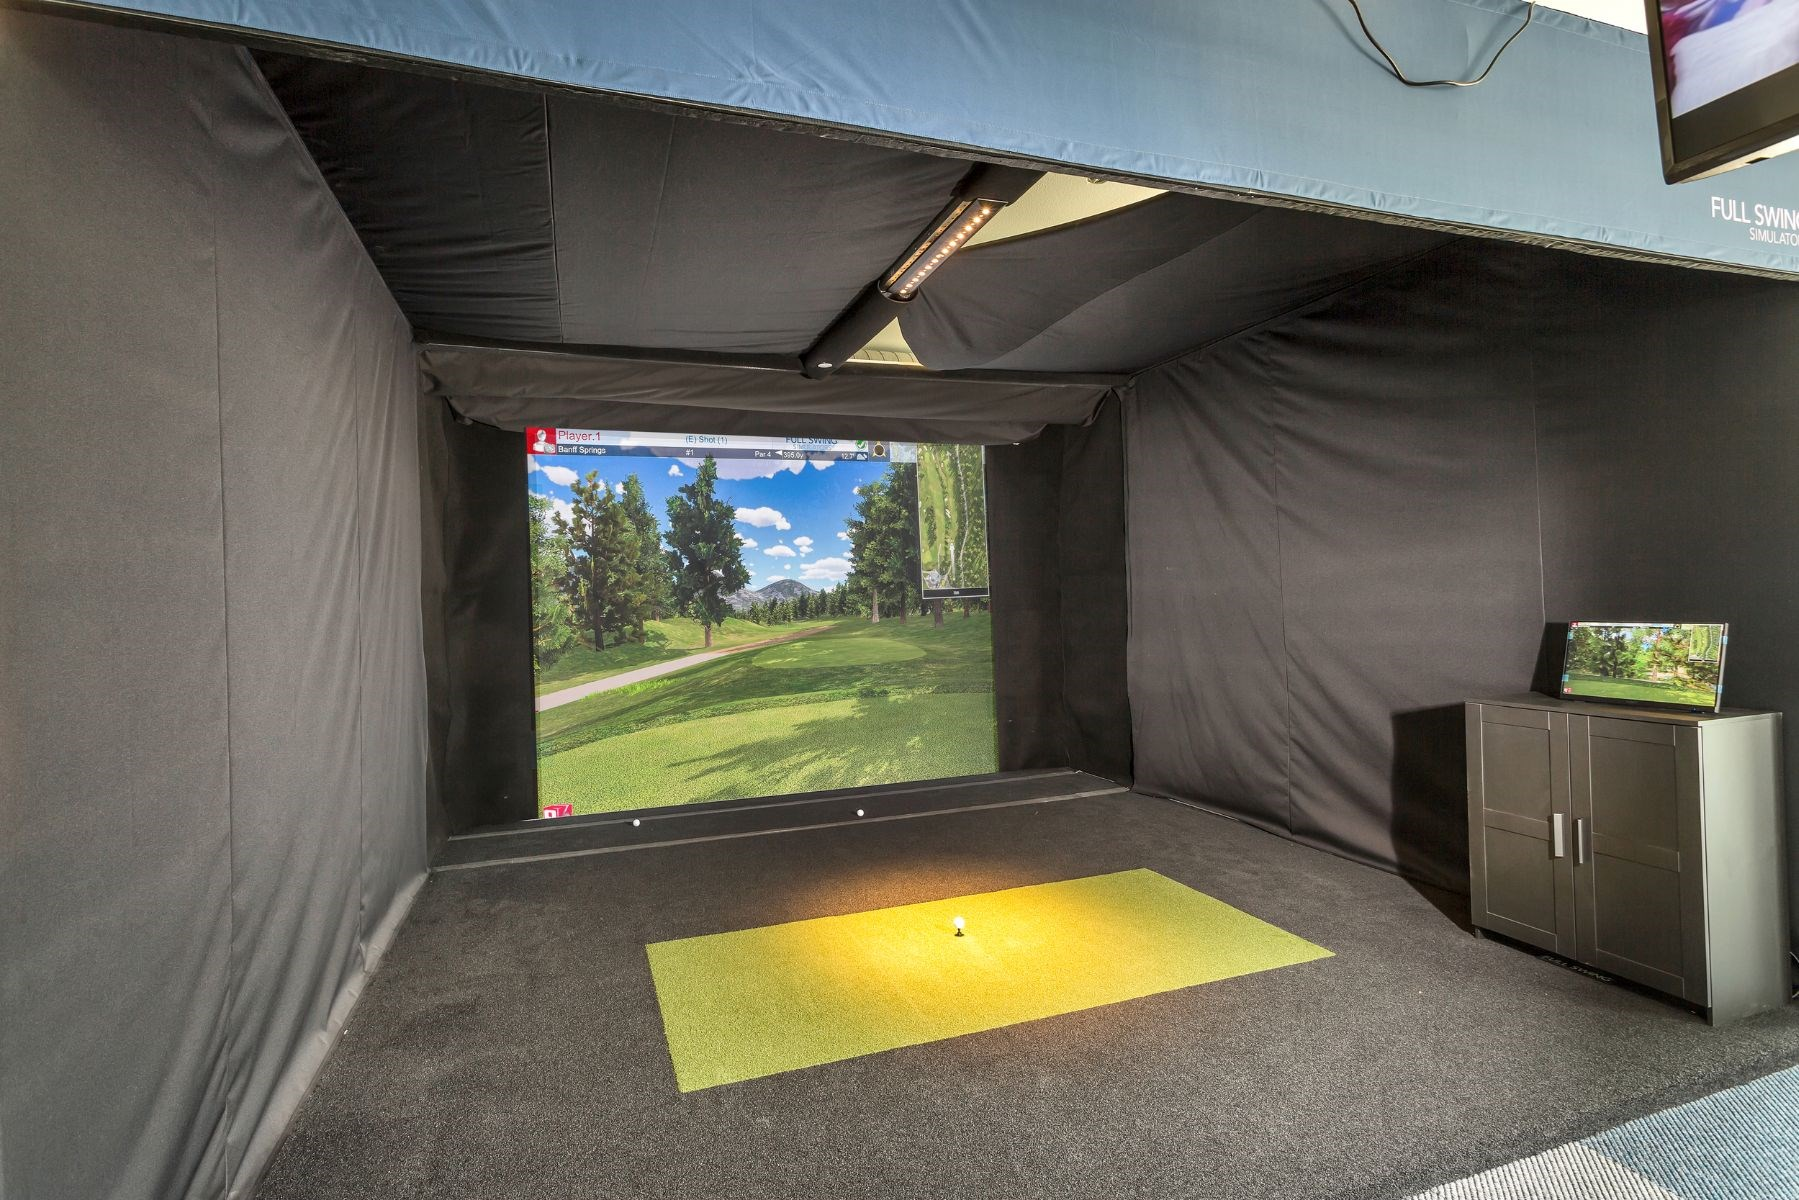 Westwood Green Apartments Golf Simulator with large screen